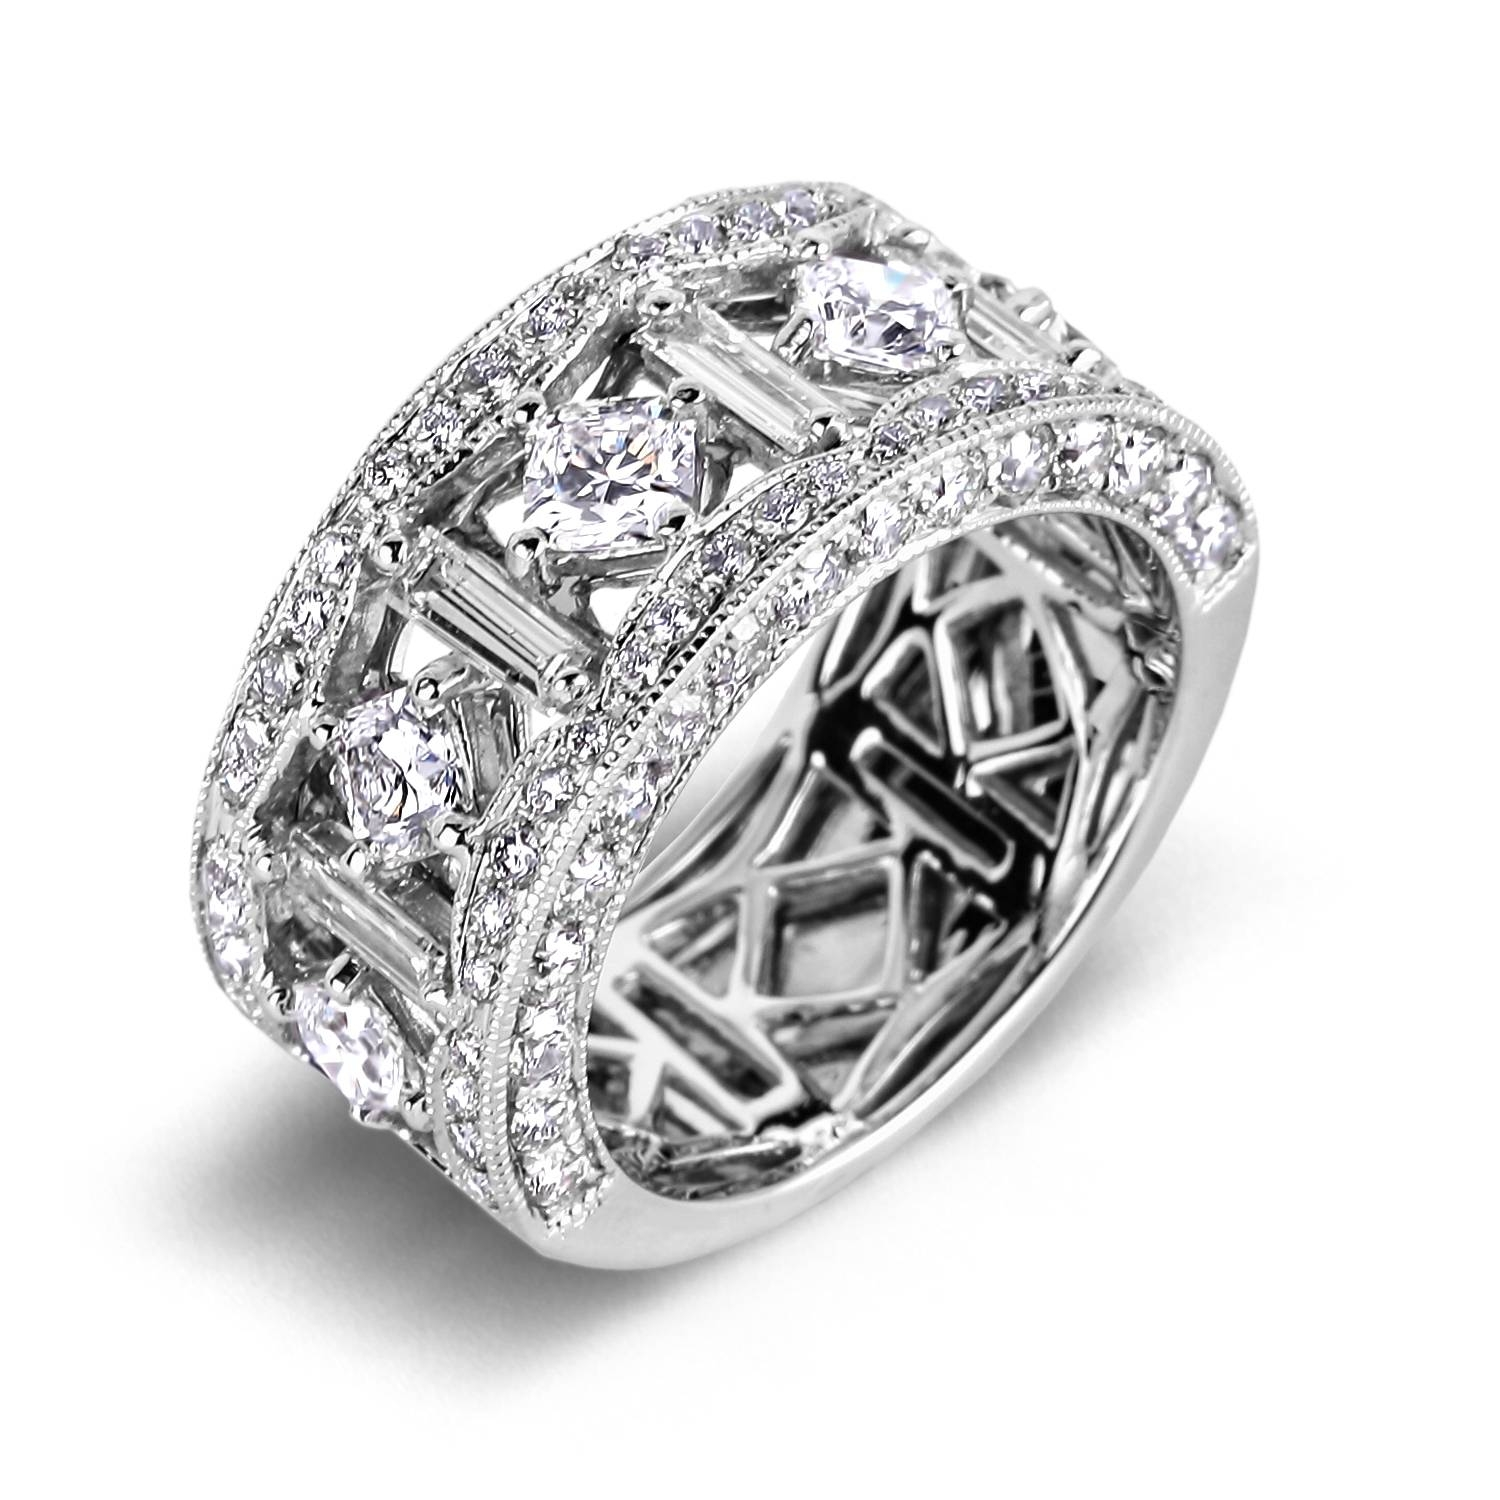 Wedding Anniversary Rings Diamonds | Wedding Ideas Throughout Best And Newest Diamonds Anniversary Rings (View 22 of 25)